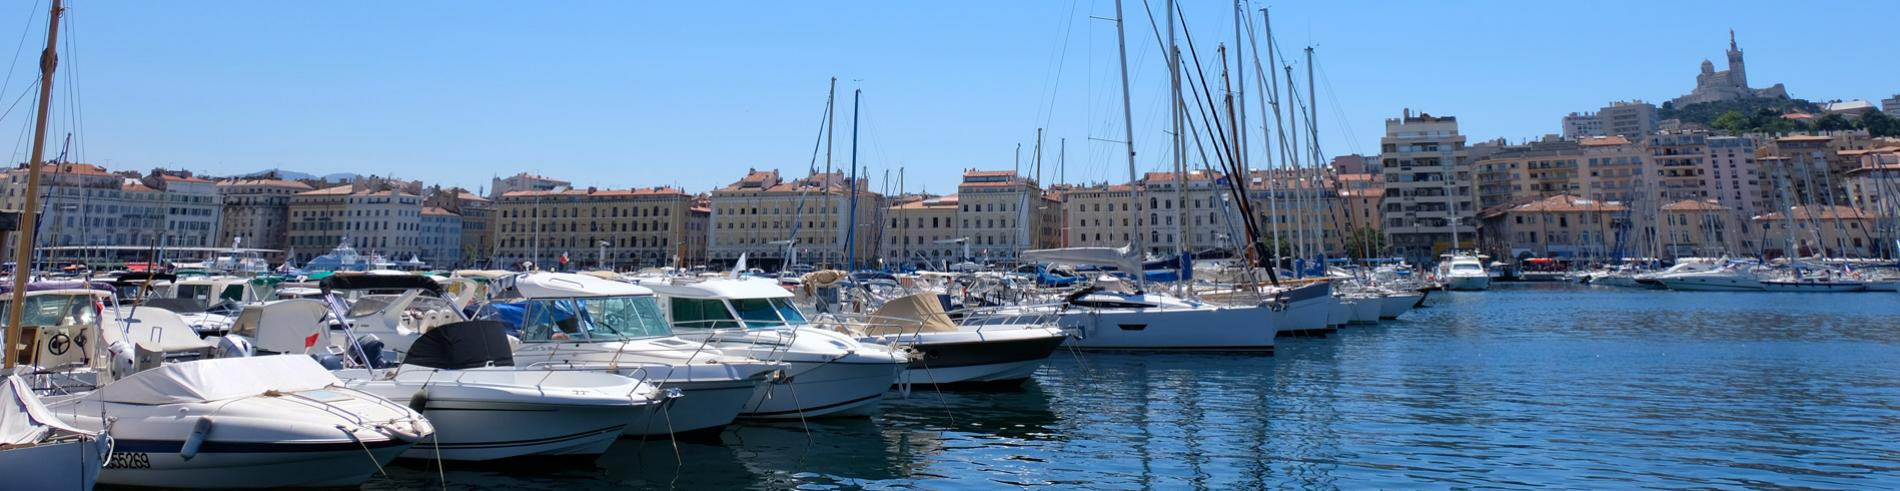 Boats in Marseille port